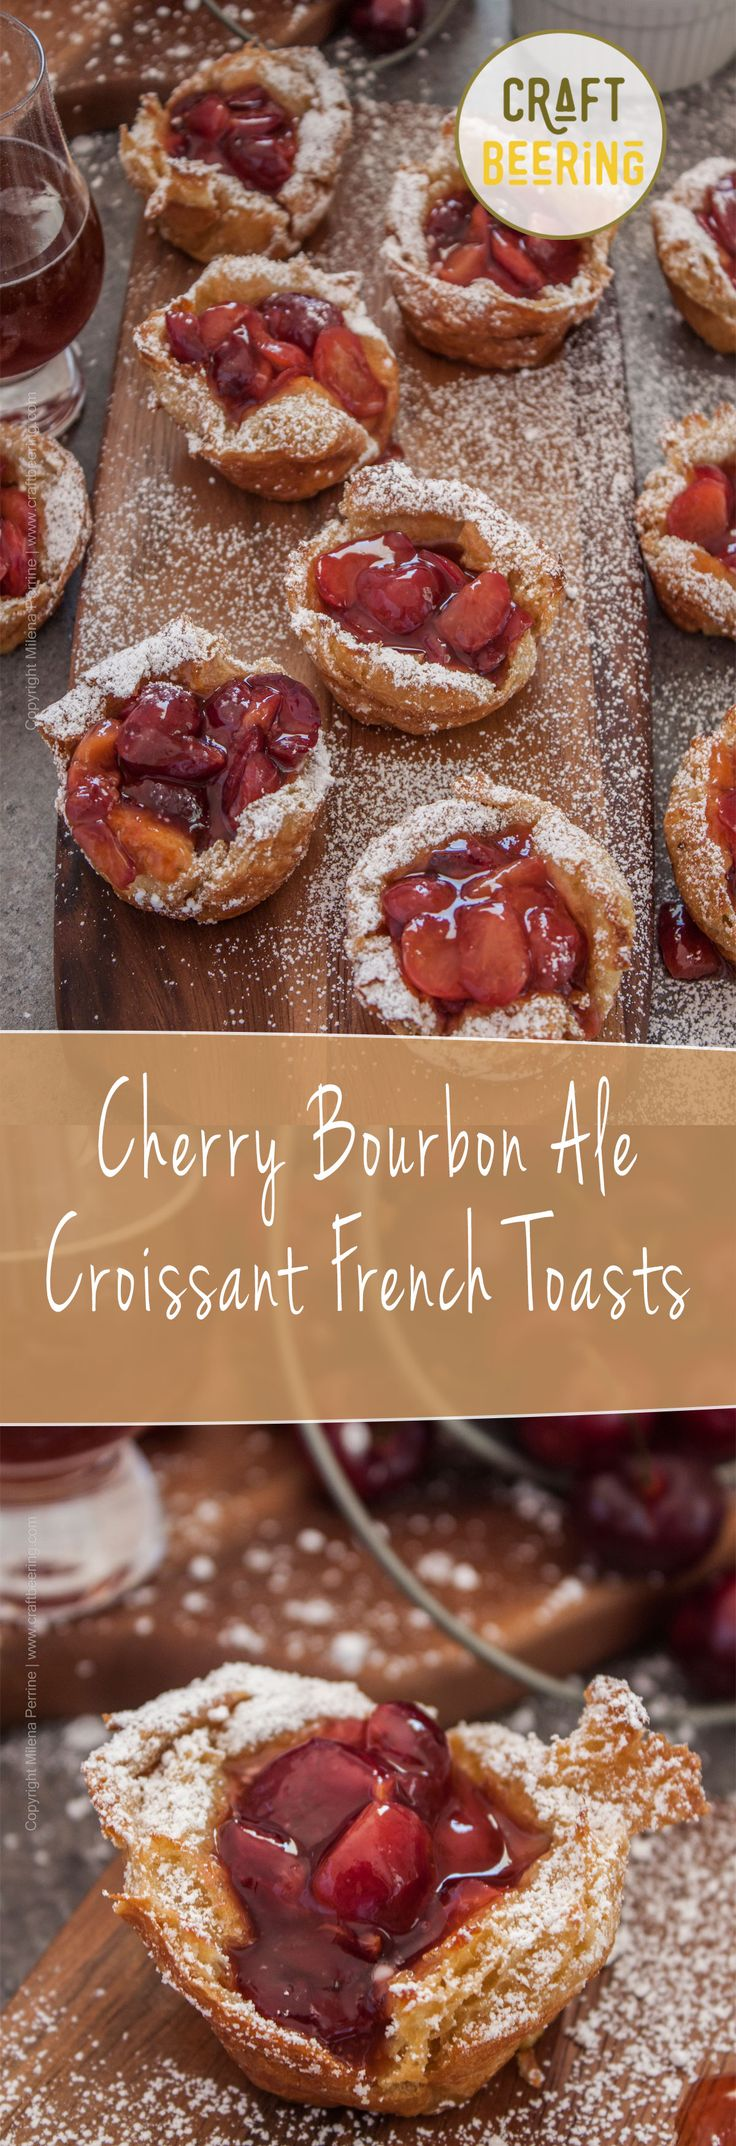 Cherry Bourbon Ale Croissant French Toast Cups. The must have brunch item during cherry season!